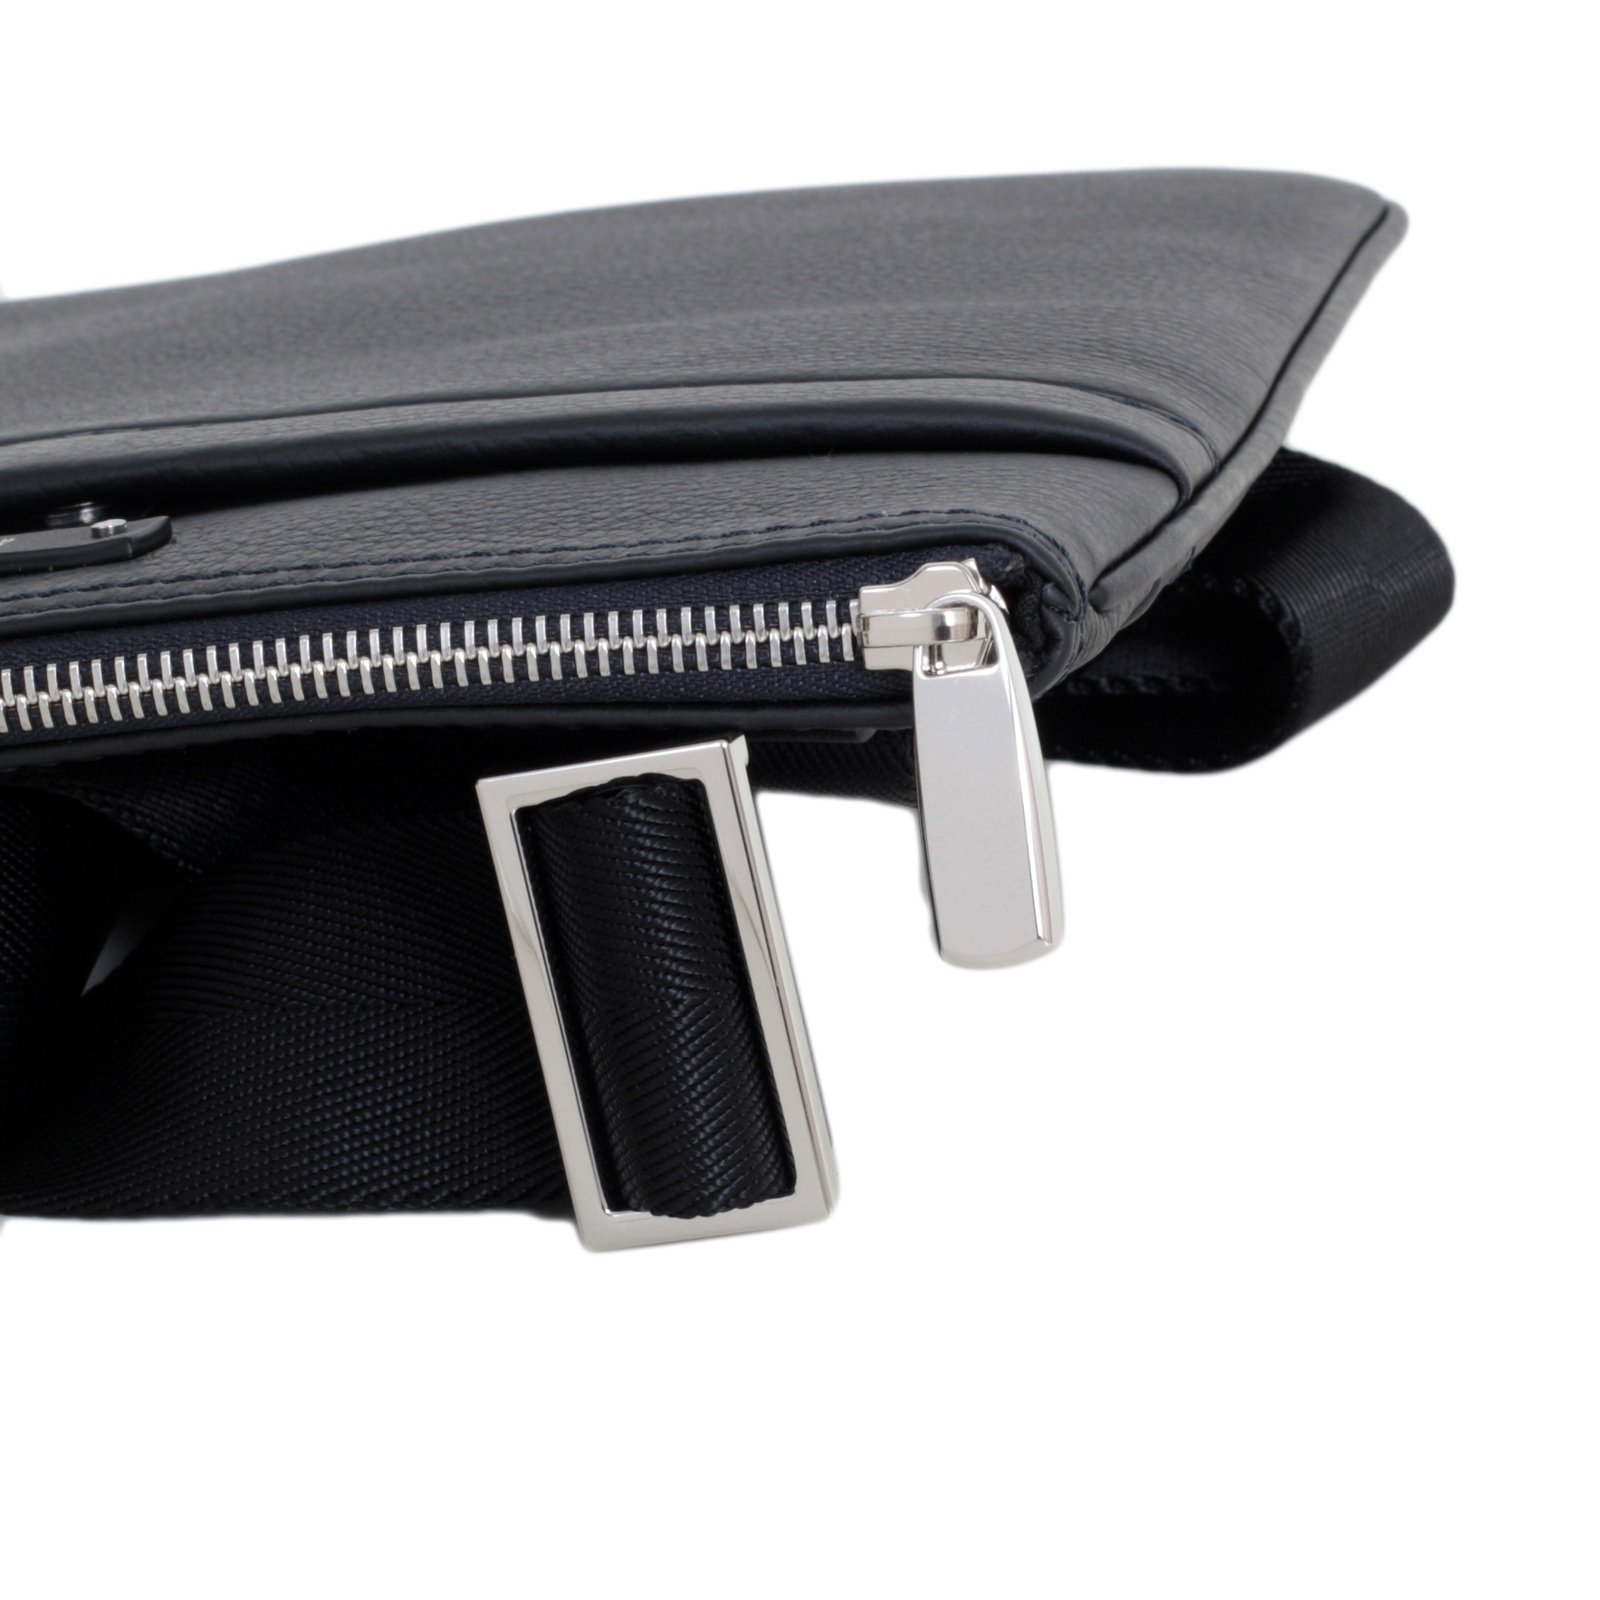 Hugo Boss Grain Leather 50311778 Top Zip Closure Traveller Bag in Black  with Adjustable Strap BOSS6608 4028f6749a